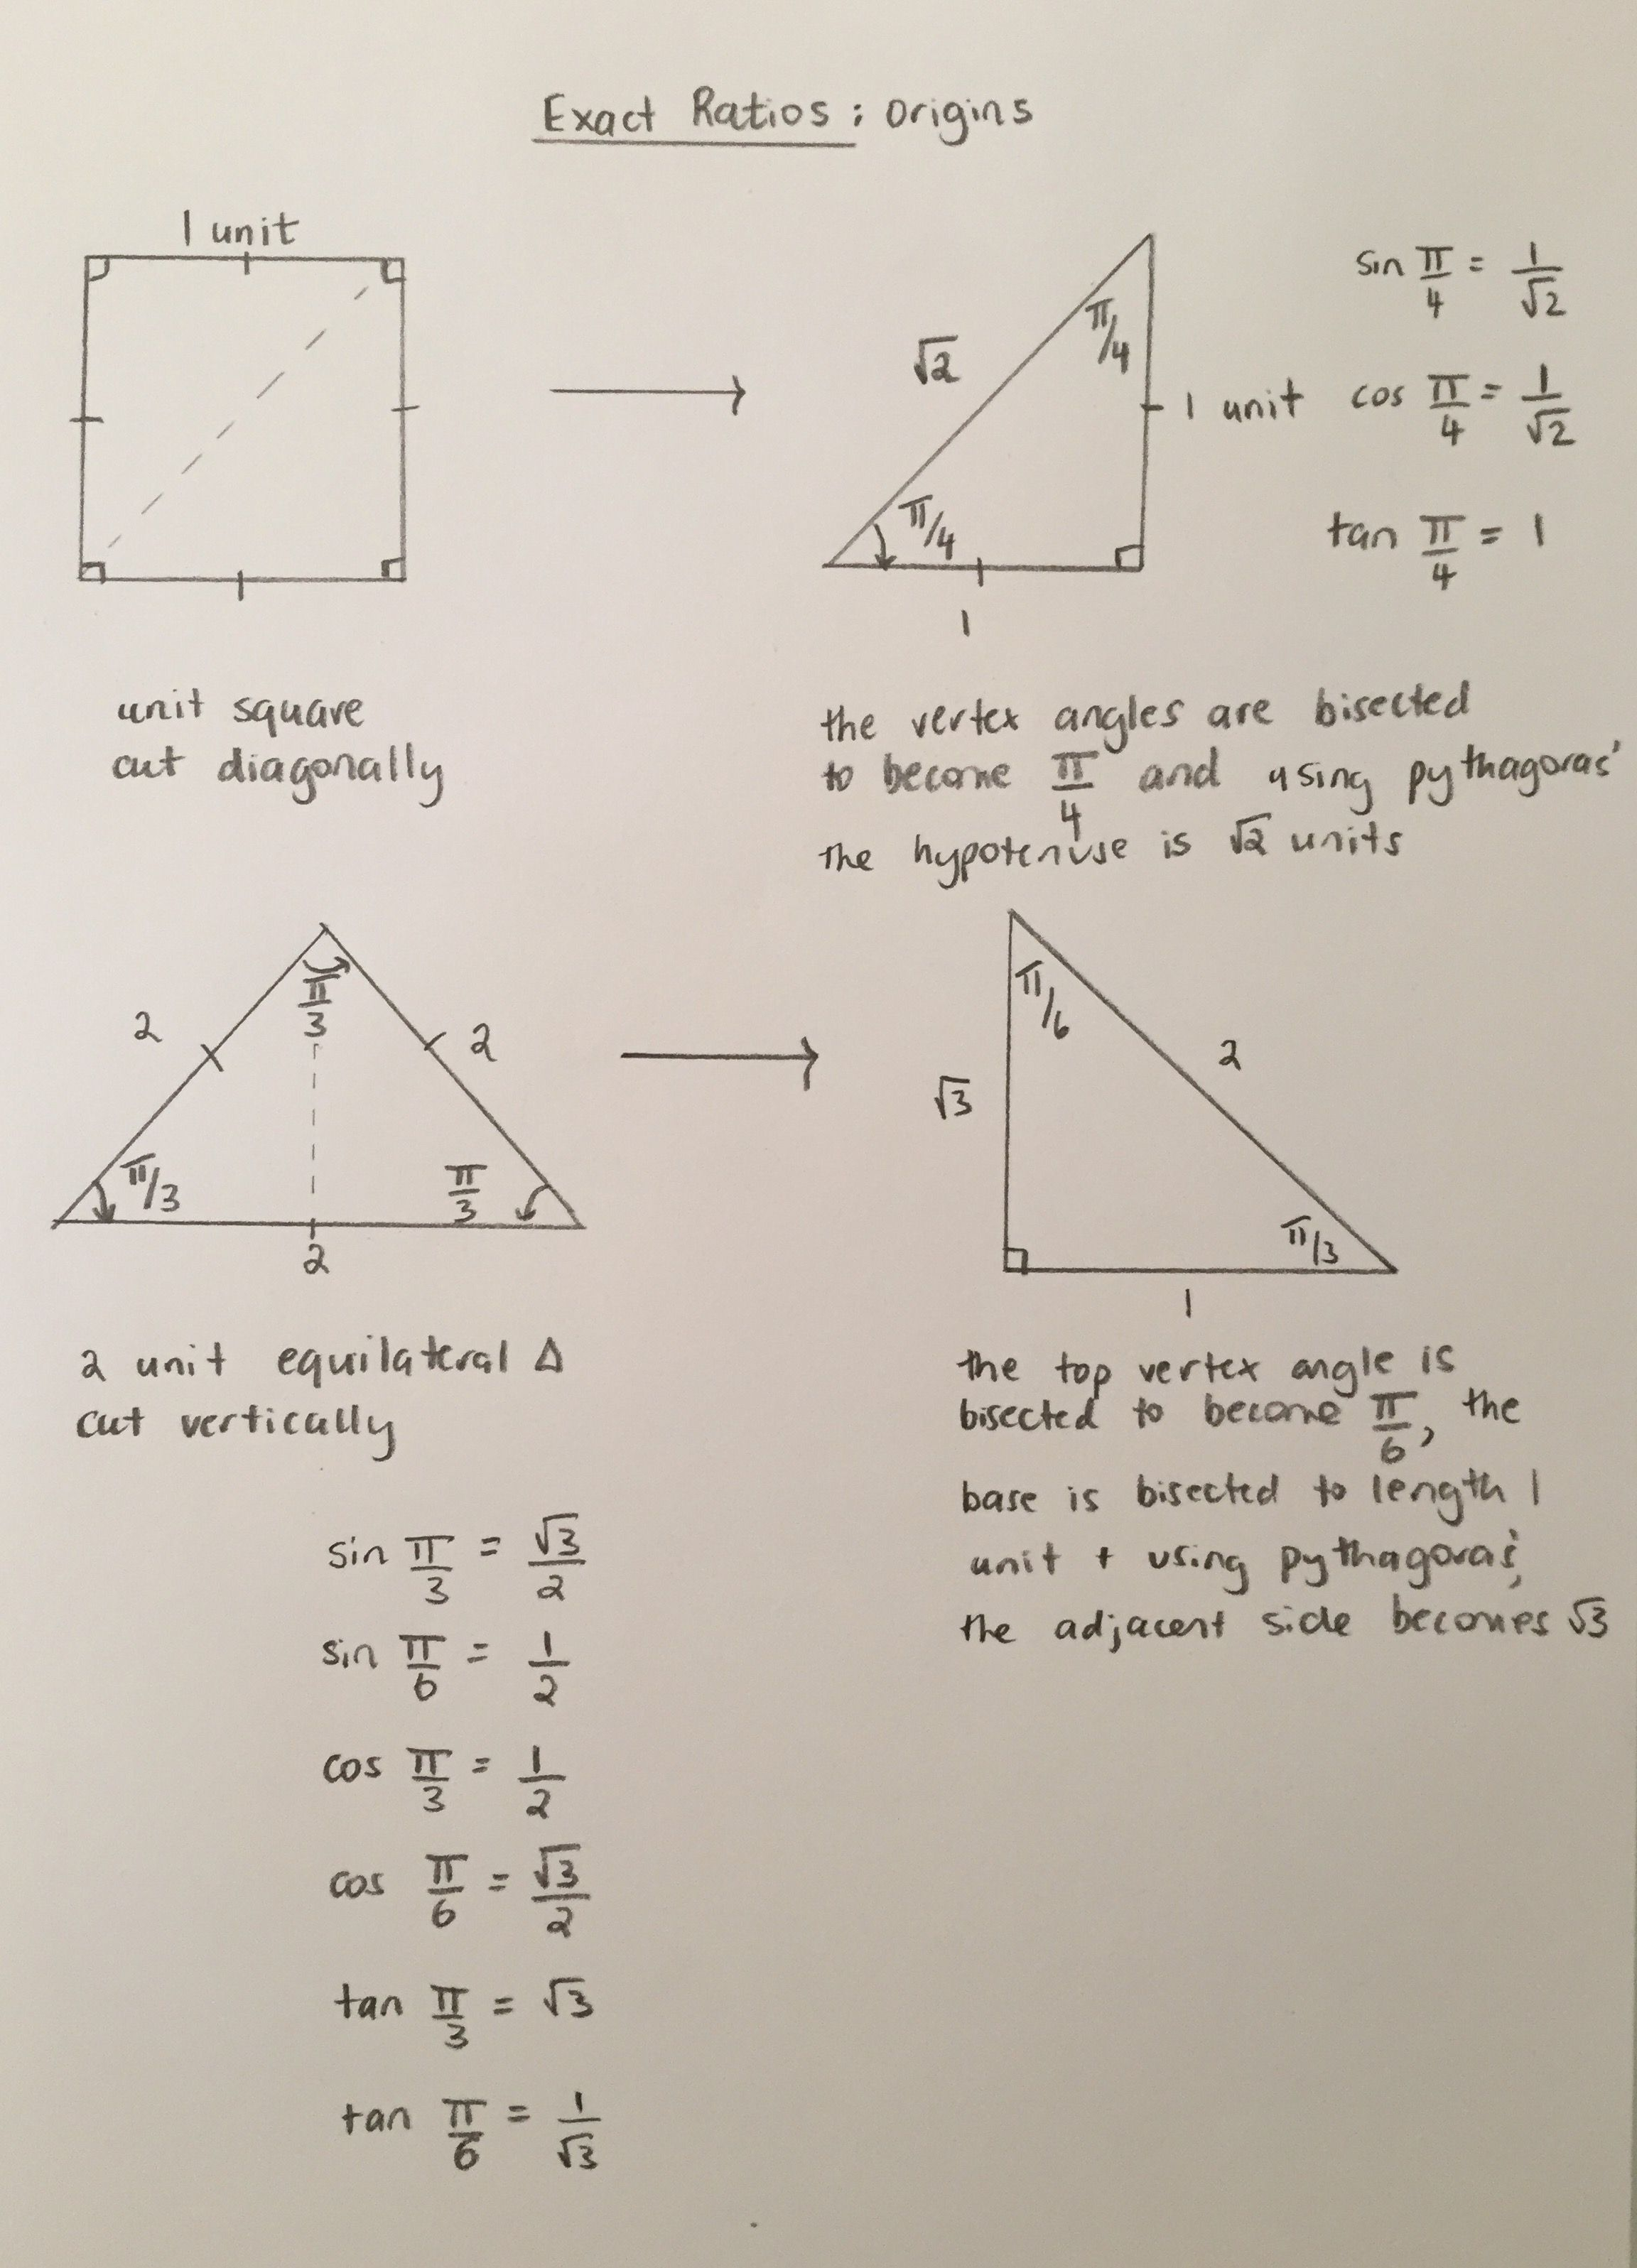 Exact Trig Ratios The Unit Square And 2 Unit Equilateral Triangle Mathematics Online Studying Math Study Notes